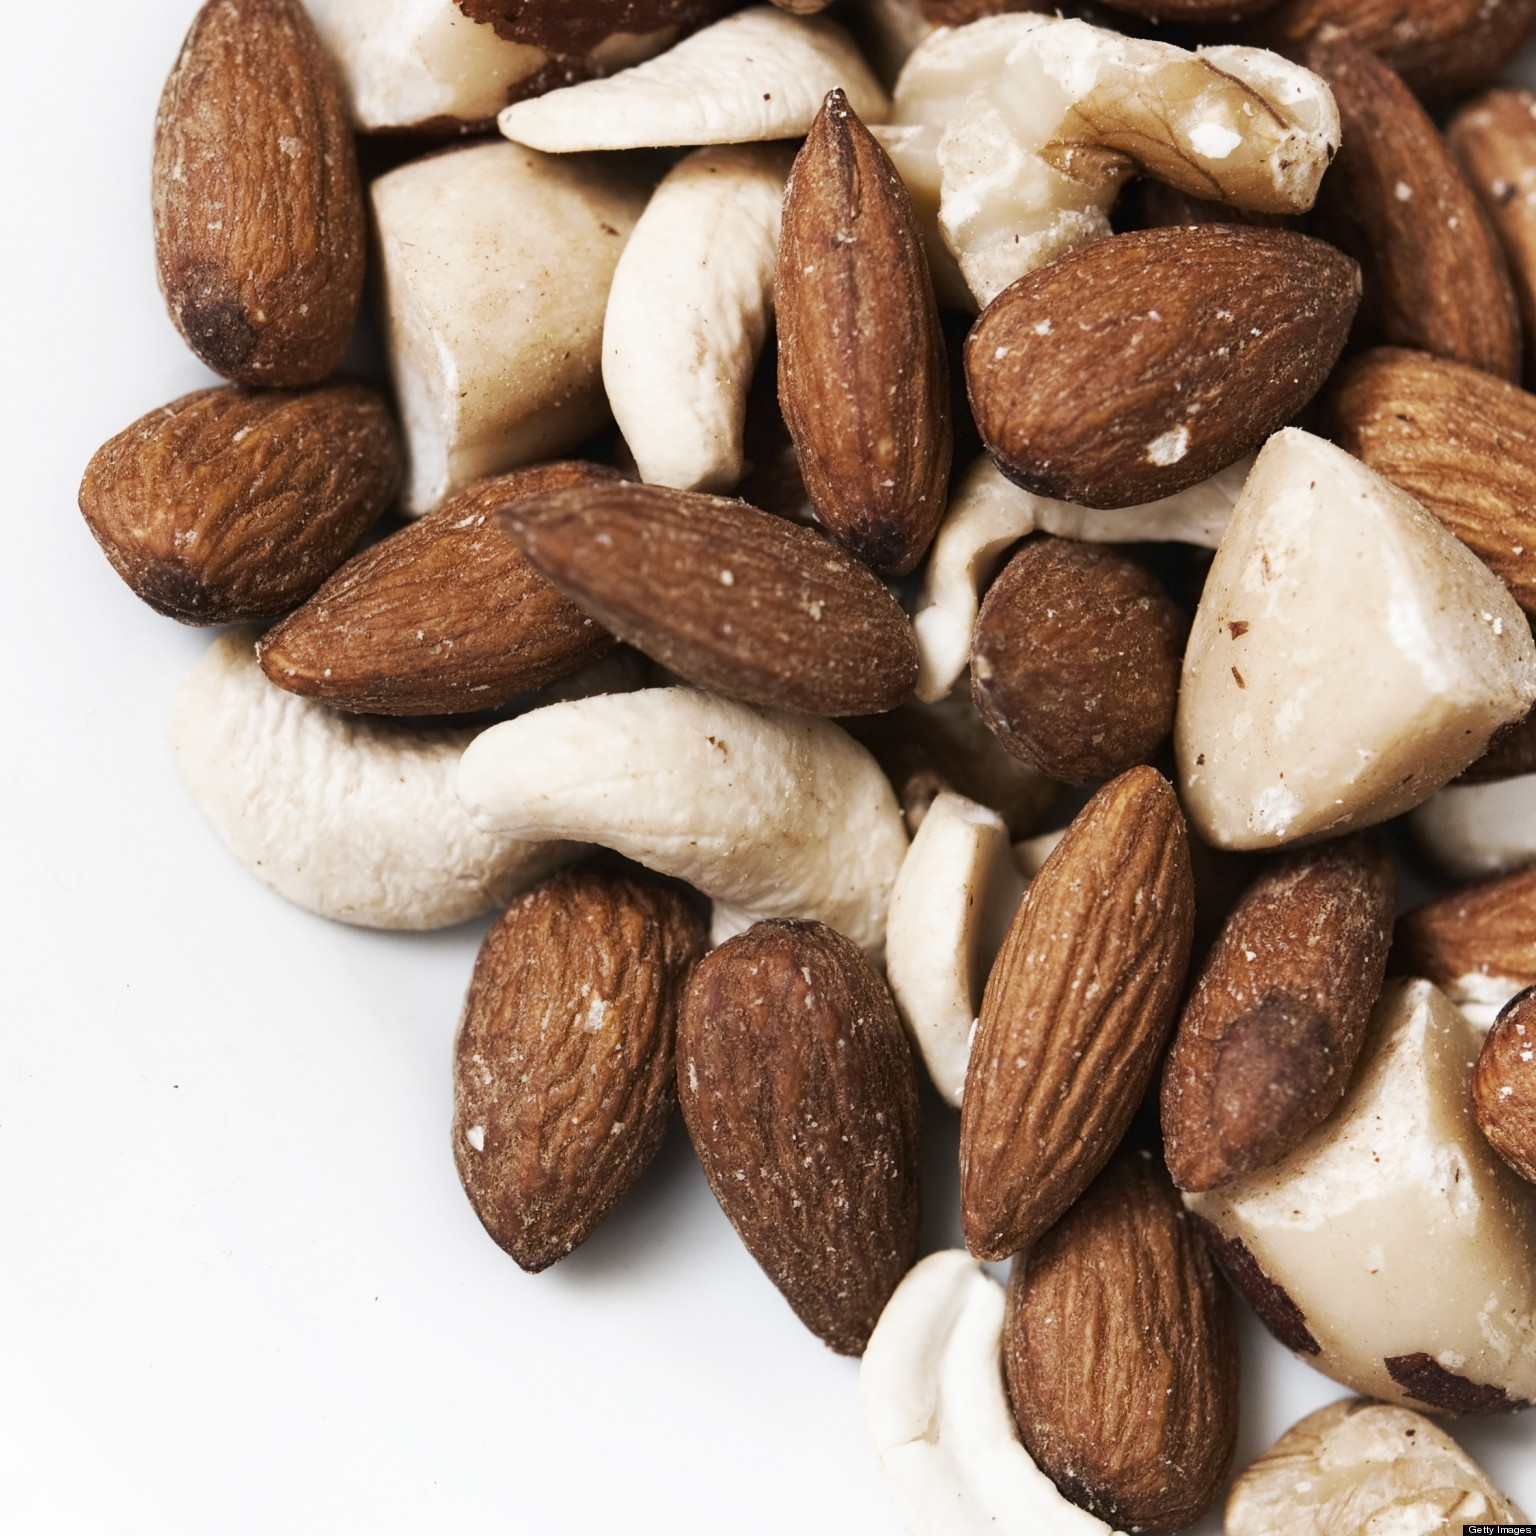 Healthy Nuts: Health Benefits For Almonds, Walnuts, Cashews, Peanuts on